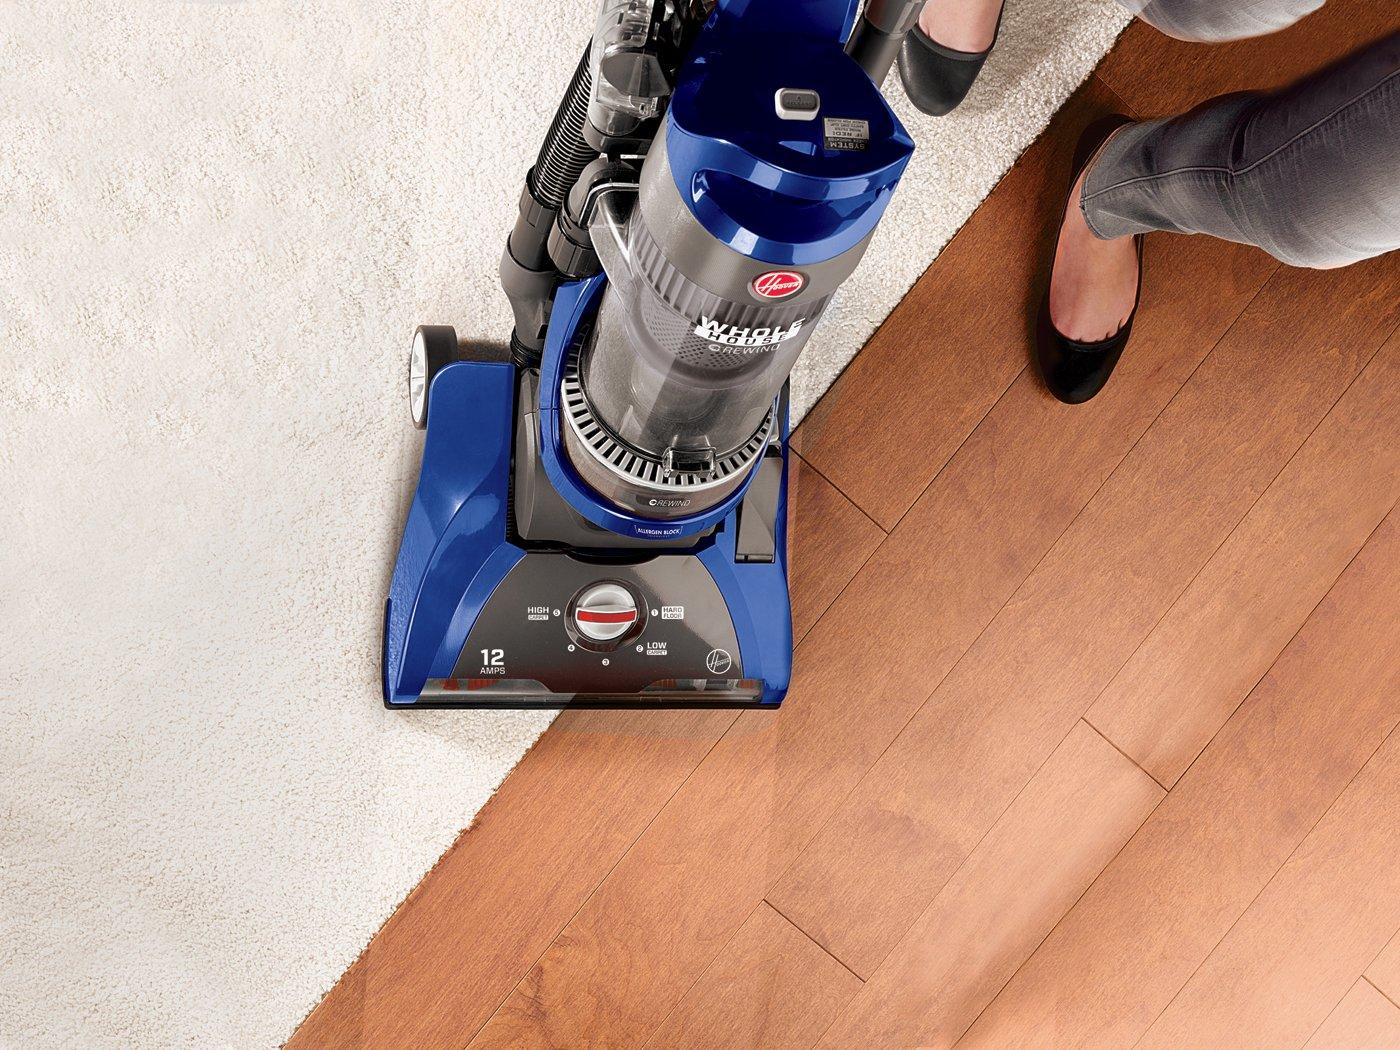 WindTunnel 2 Whole House Rewind Upright Vacuum3